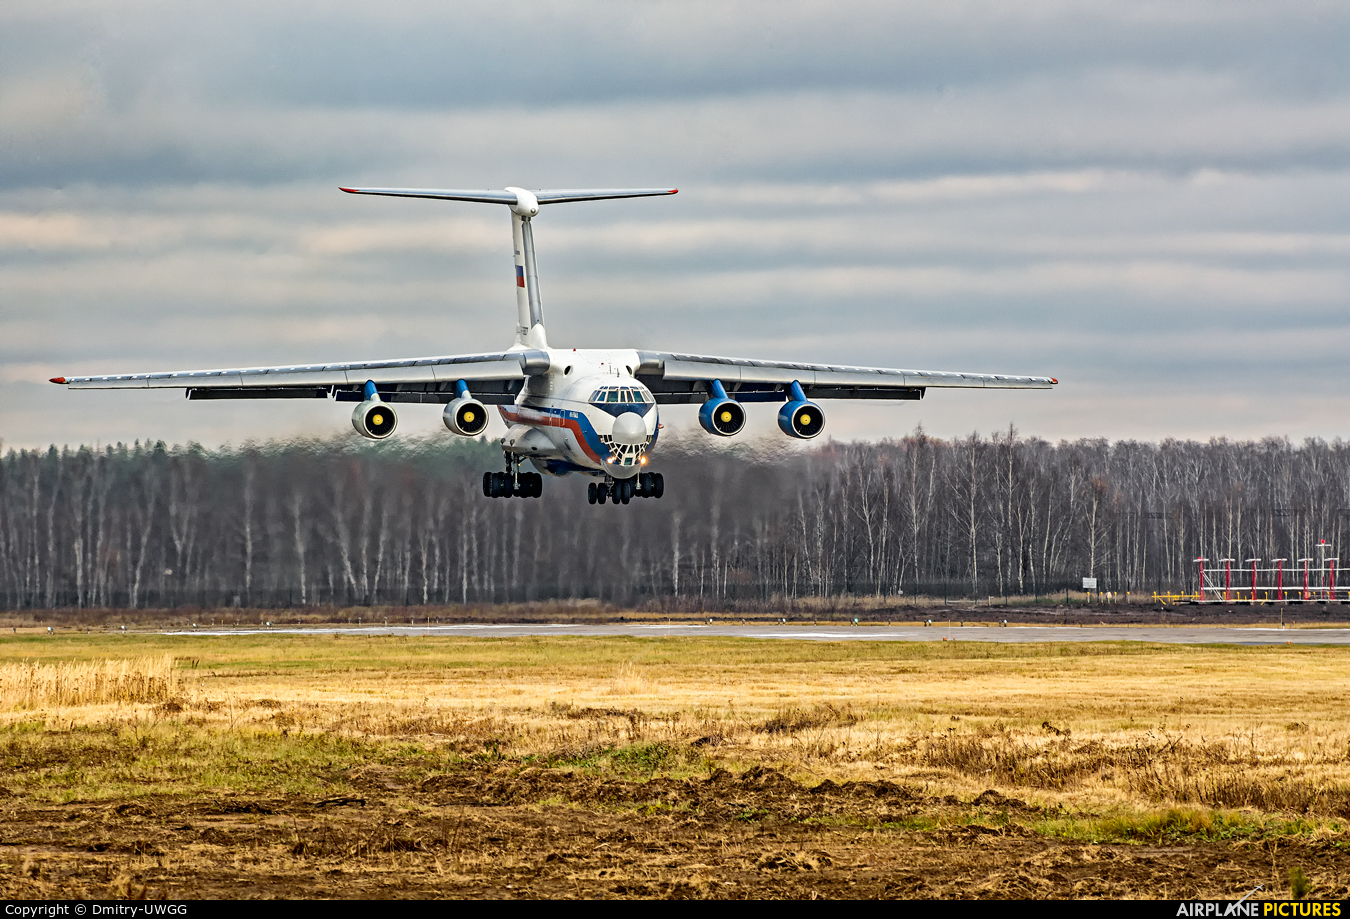 Russia - Ministry of Internal Affairs RF-76827 aircraft at Undisclosed Location